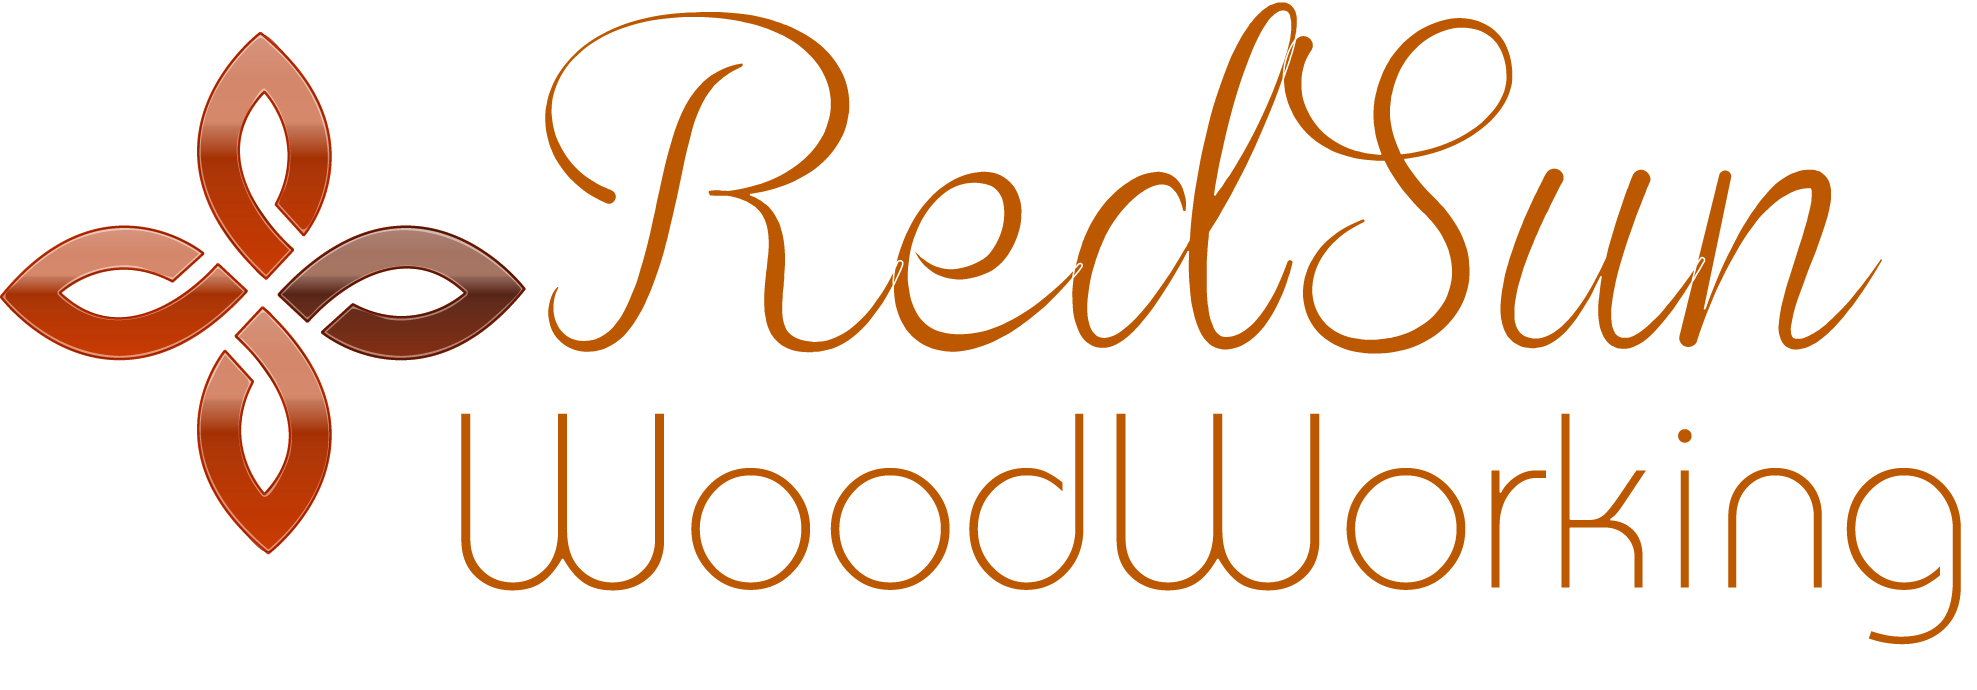 Logo Design by Prashant Rao - Entry No. 104 in the Logo Design Contest Red Sun Woodworking Logo Design.